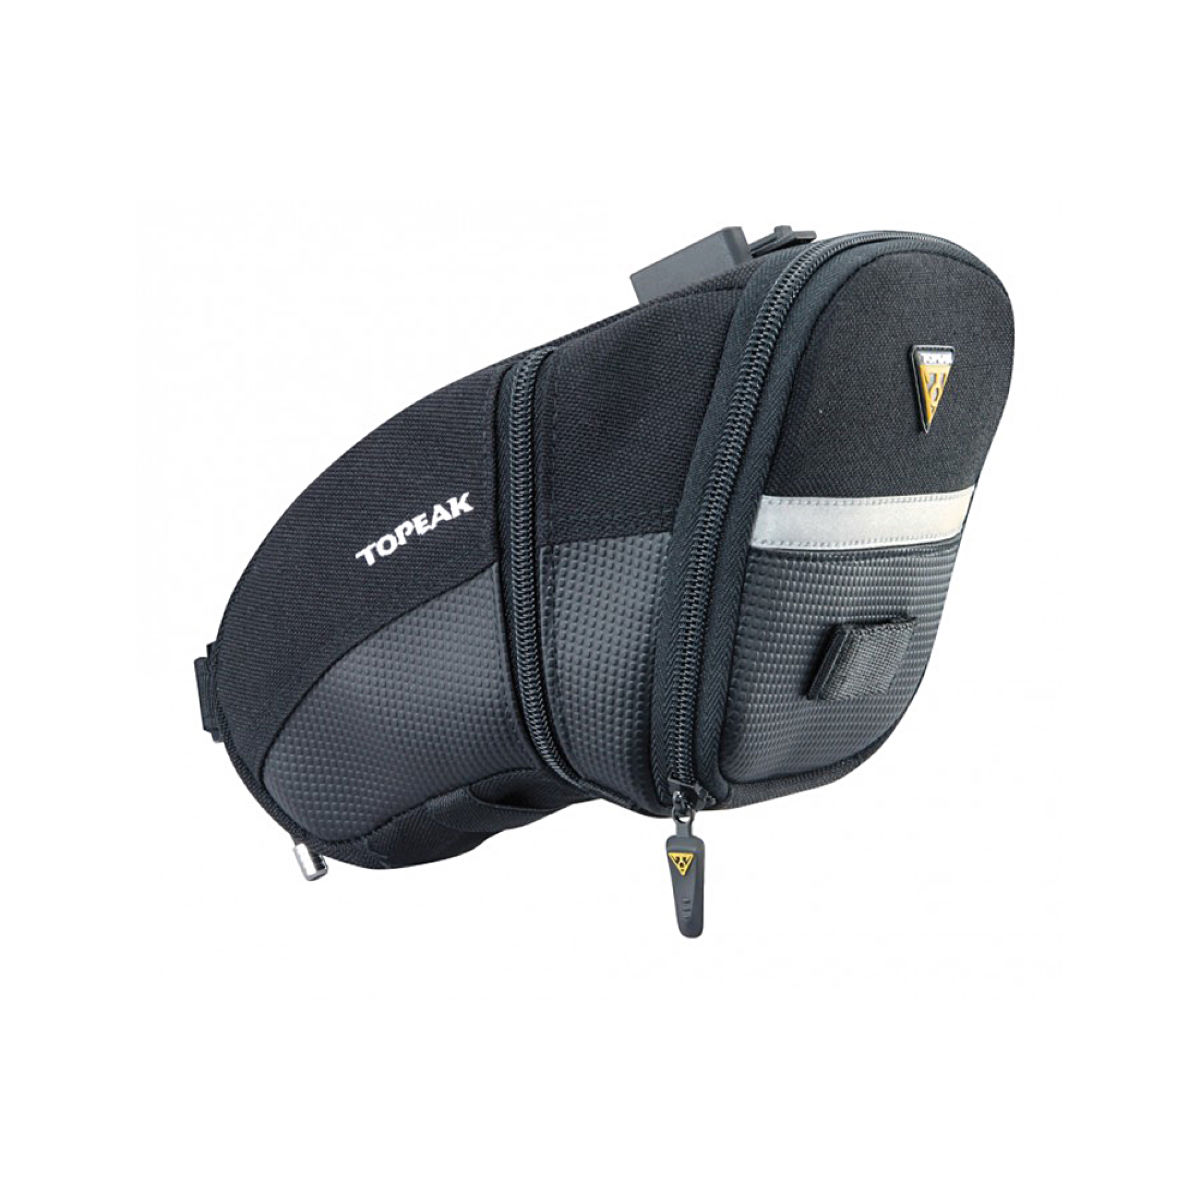 Sacoche de selle Topeak Aero Wedge (fixation clip-on, taille L) - L